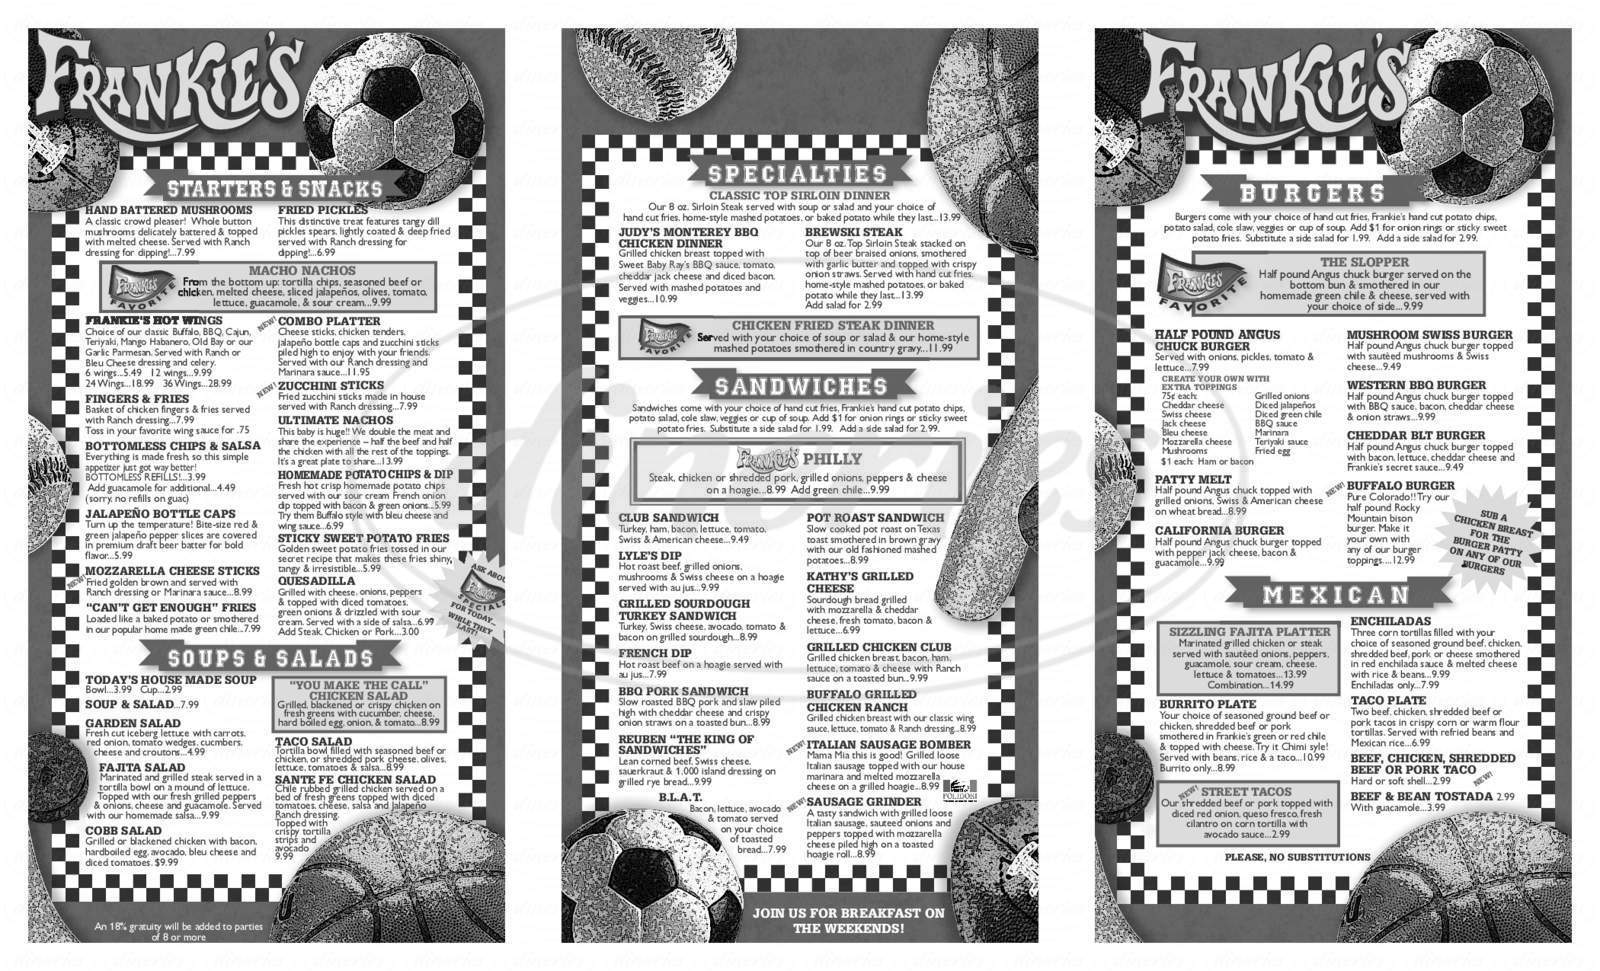 menu for Frankie's Bar & Grill